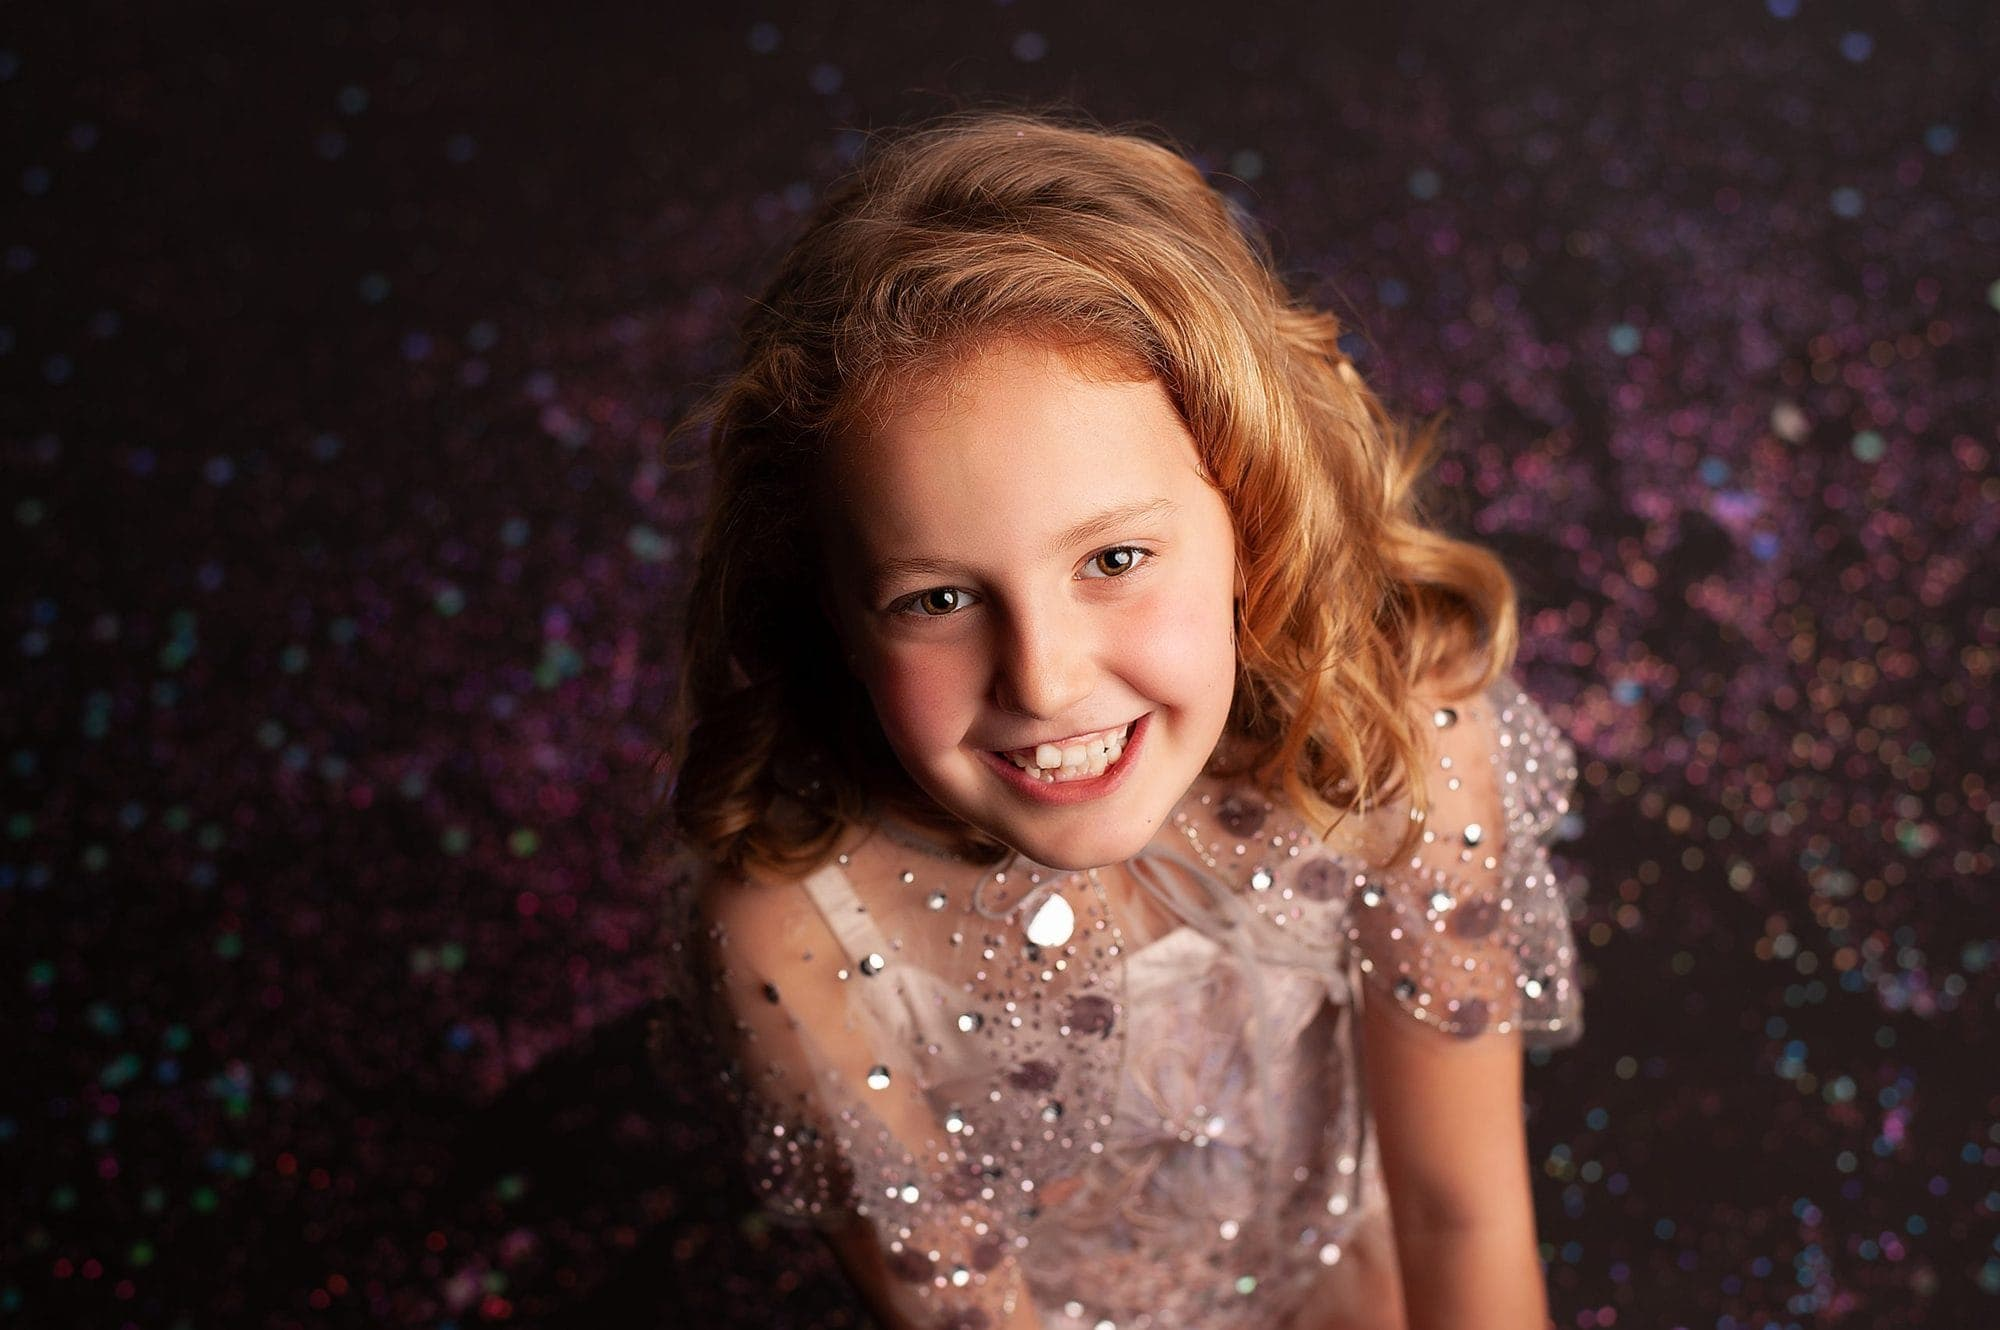 glitter mini, glitter, half term, february half term, photoshoot, bromley